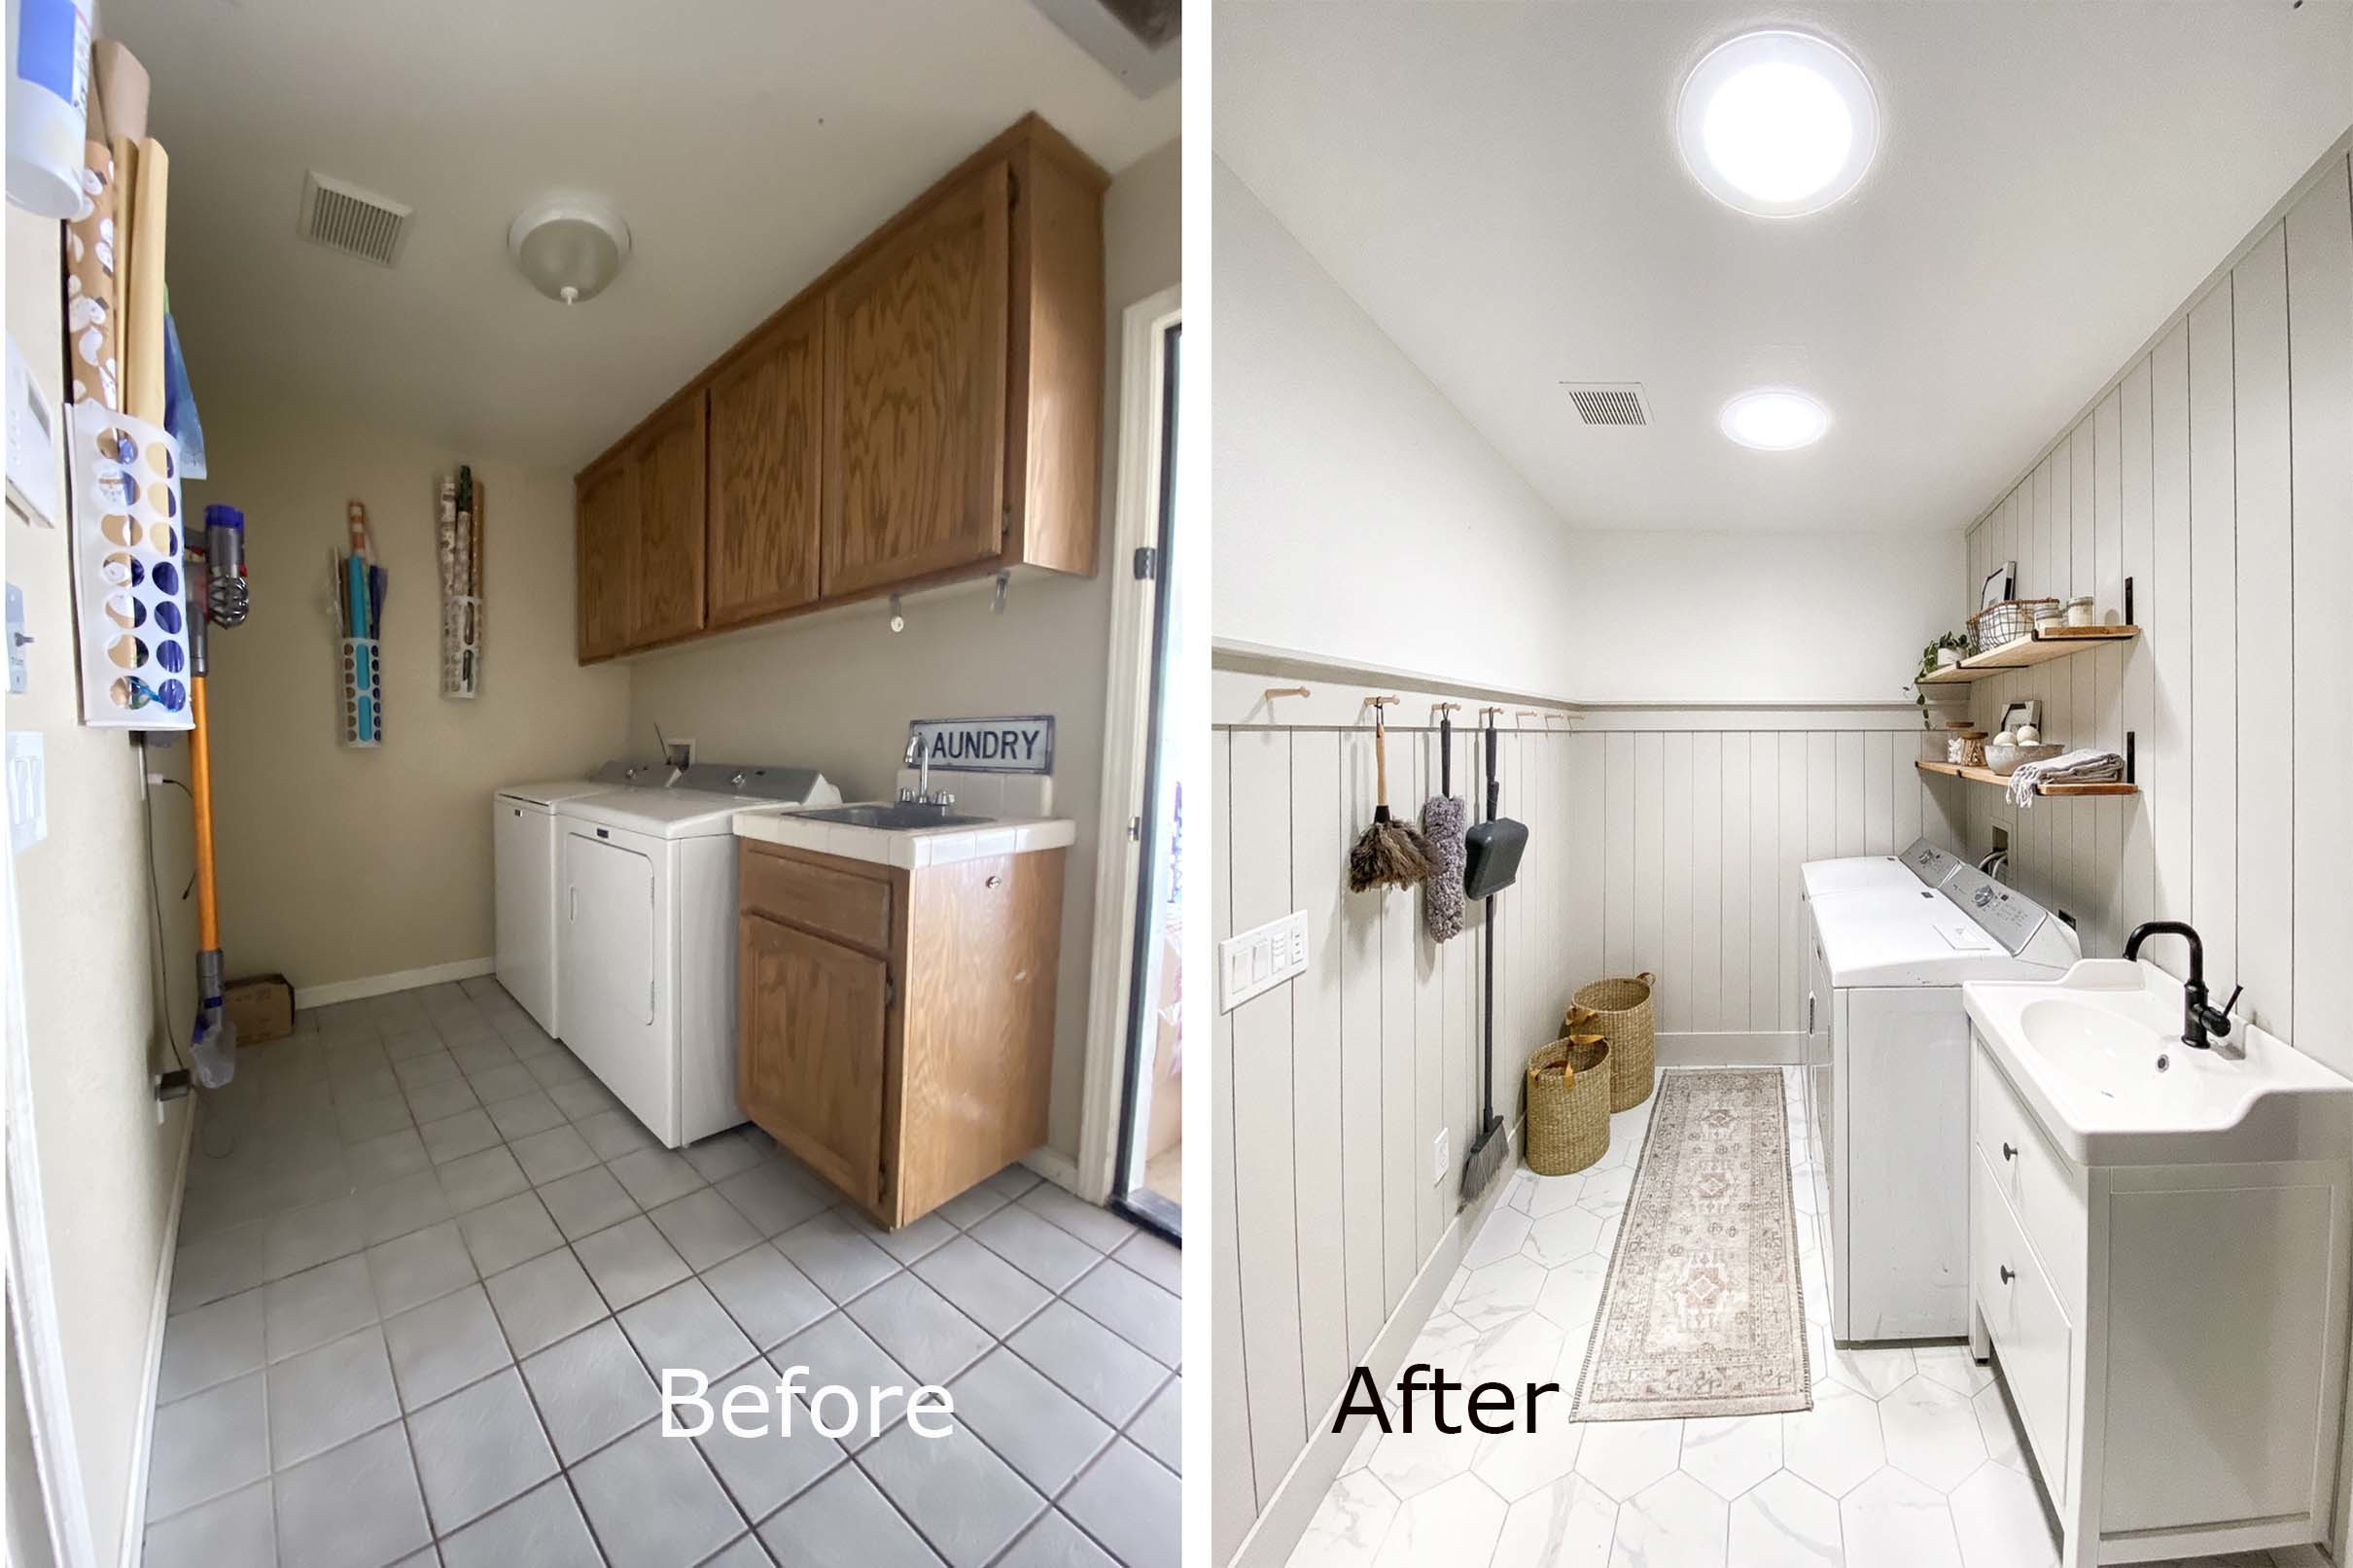 Laundry room before after